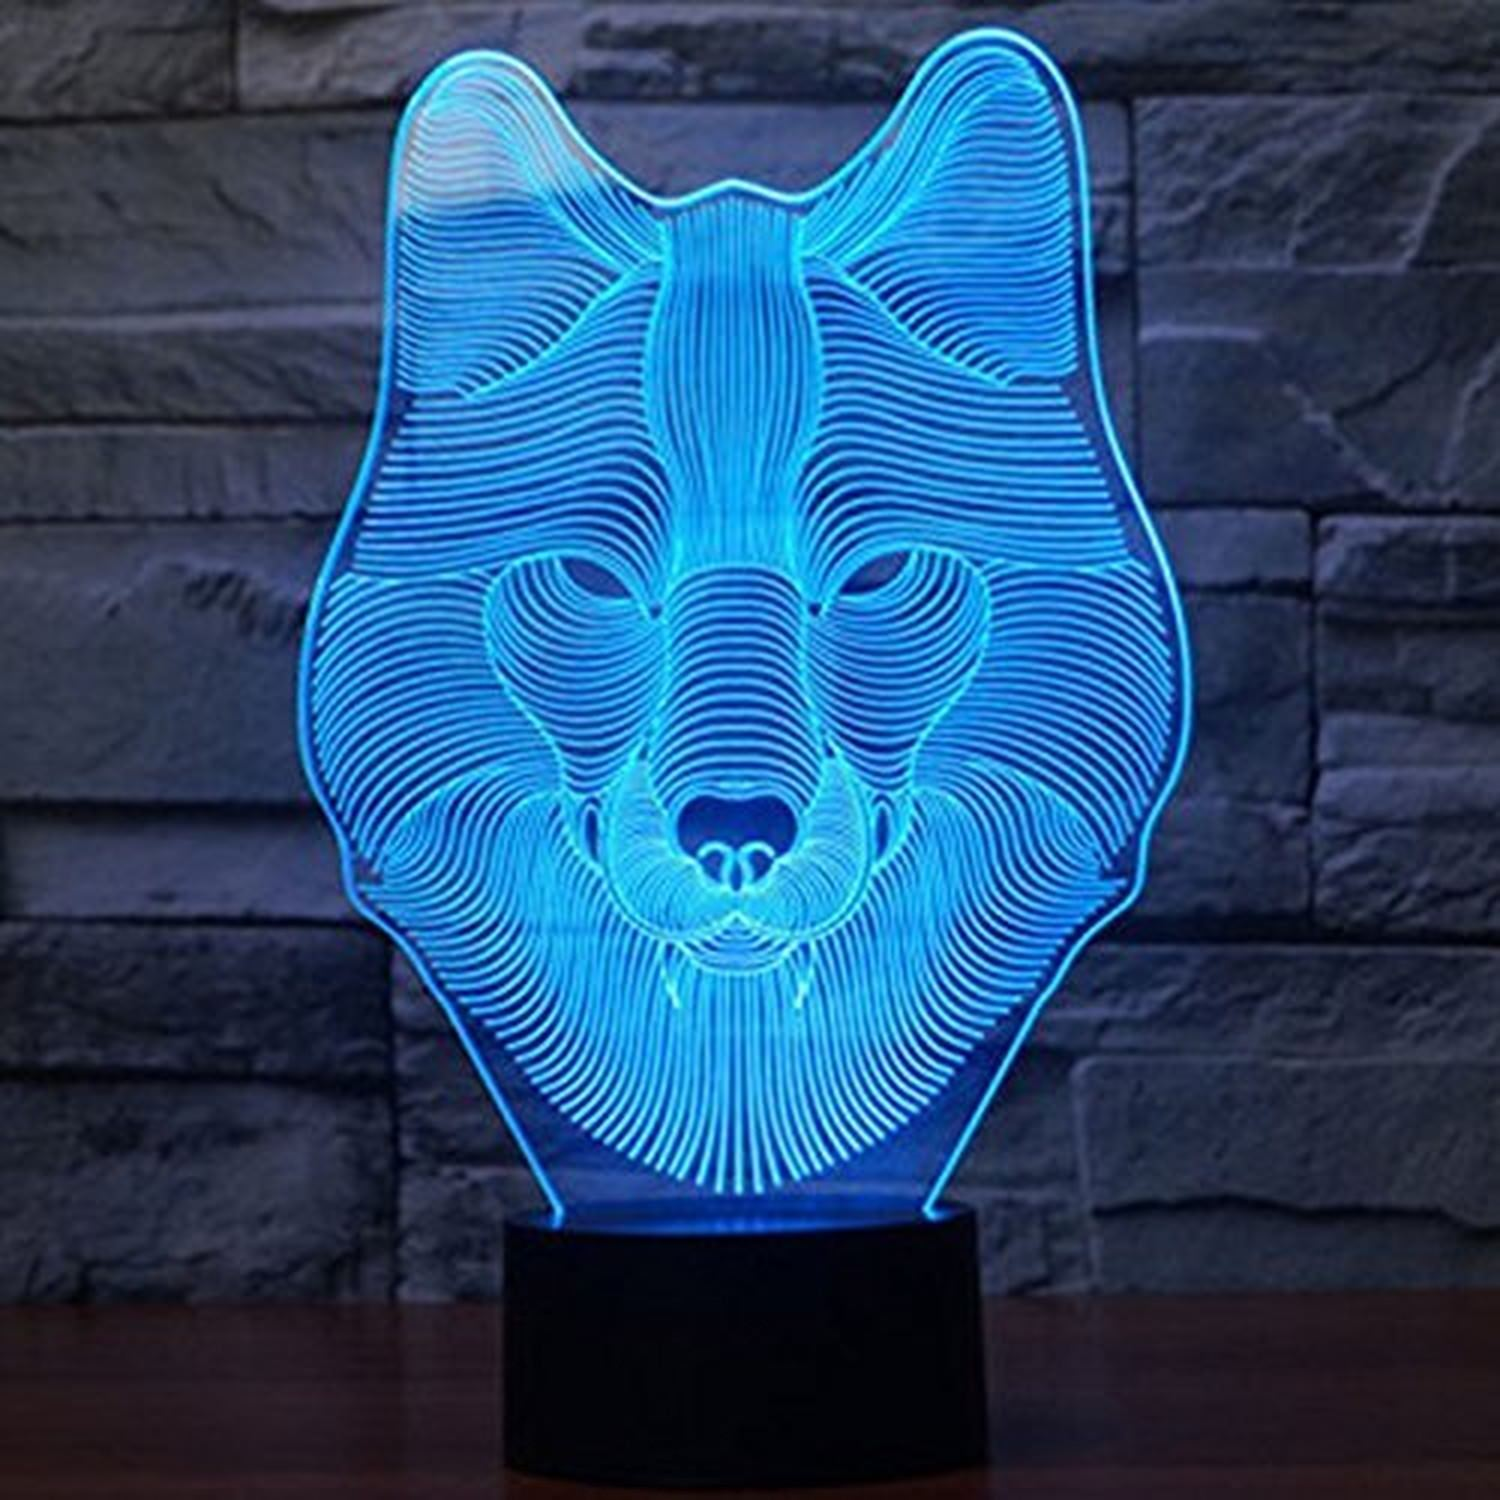 company introduces call to majestic mwl news wolf arms release beer lamp brewing